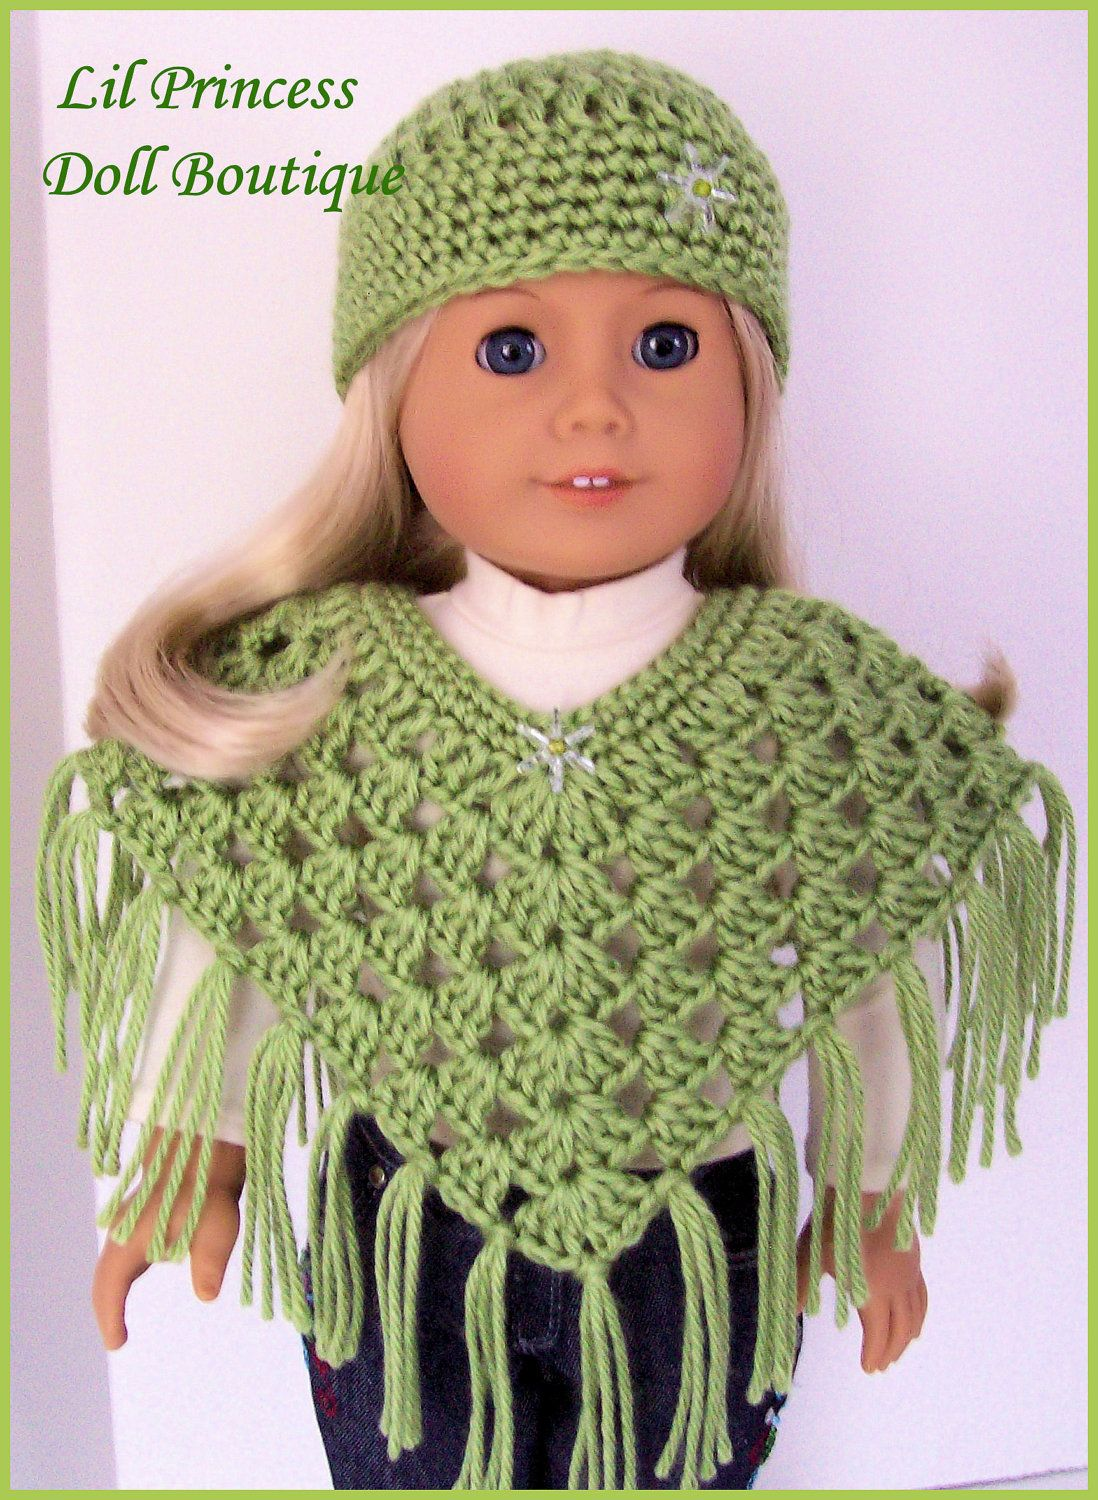 Free Knitting Pattern For Poncho For American Girl Doll : free+pattern+collar+crochet+american+girl+doll Crochet american girl doll c...